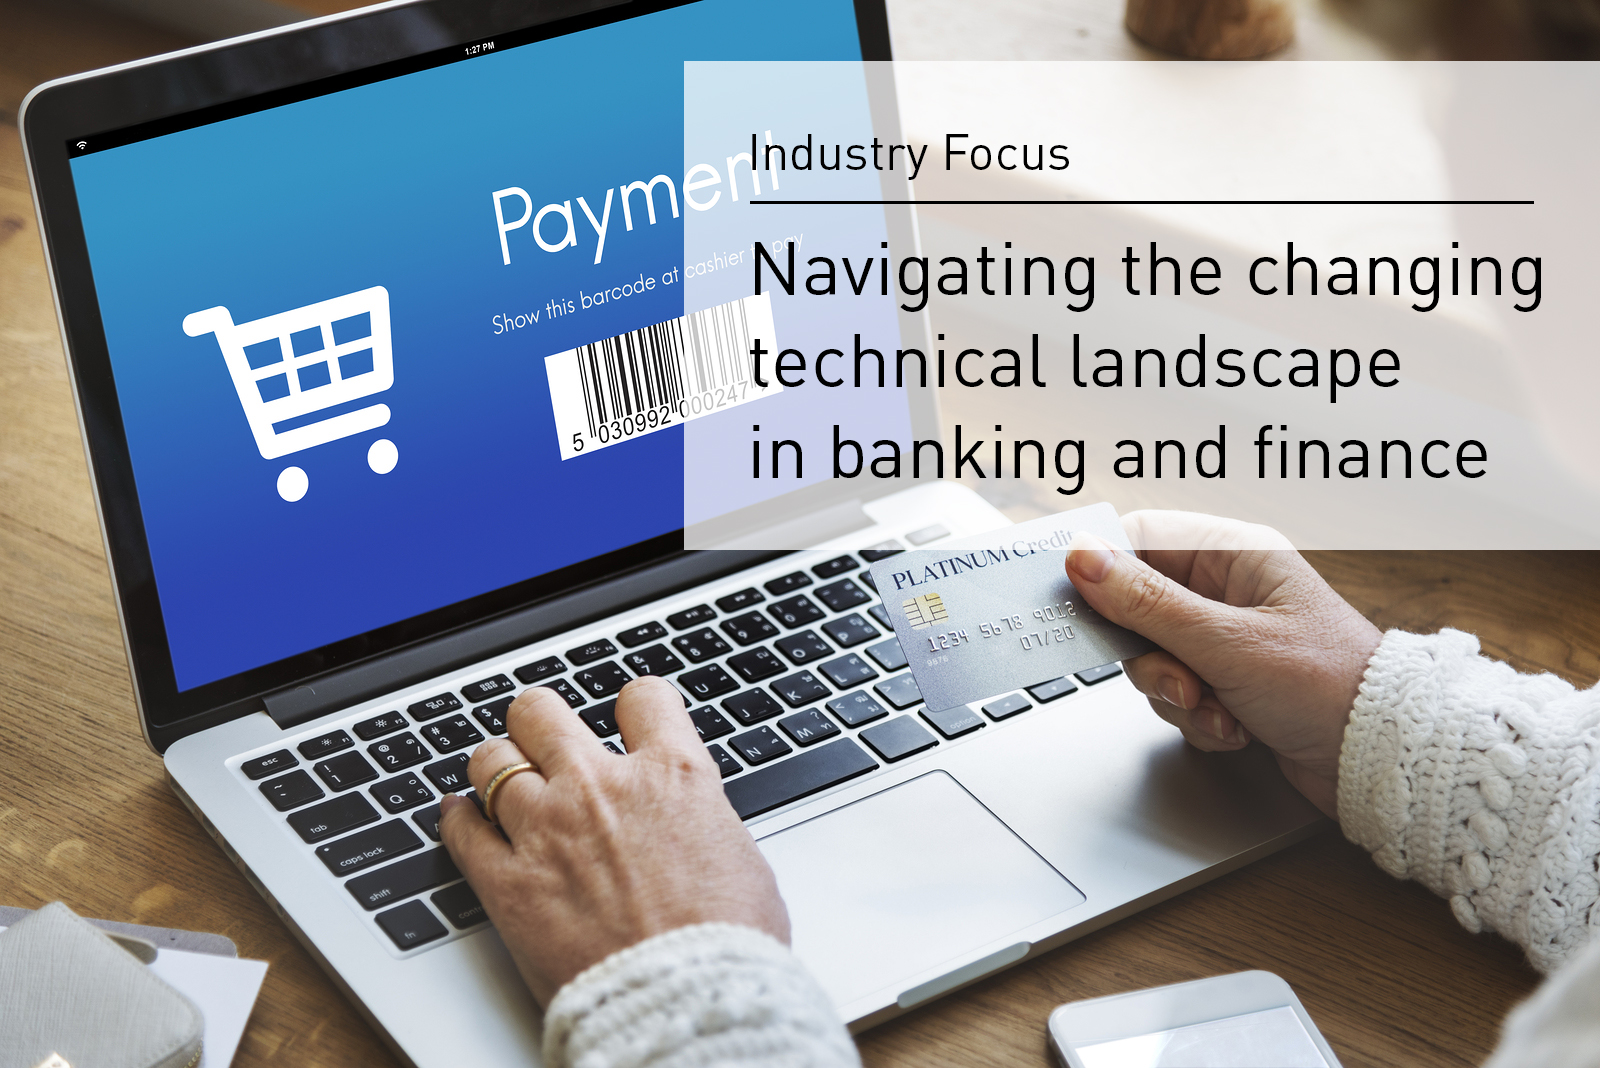 Navigating the changing technical landscape in banking and finance